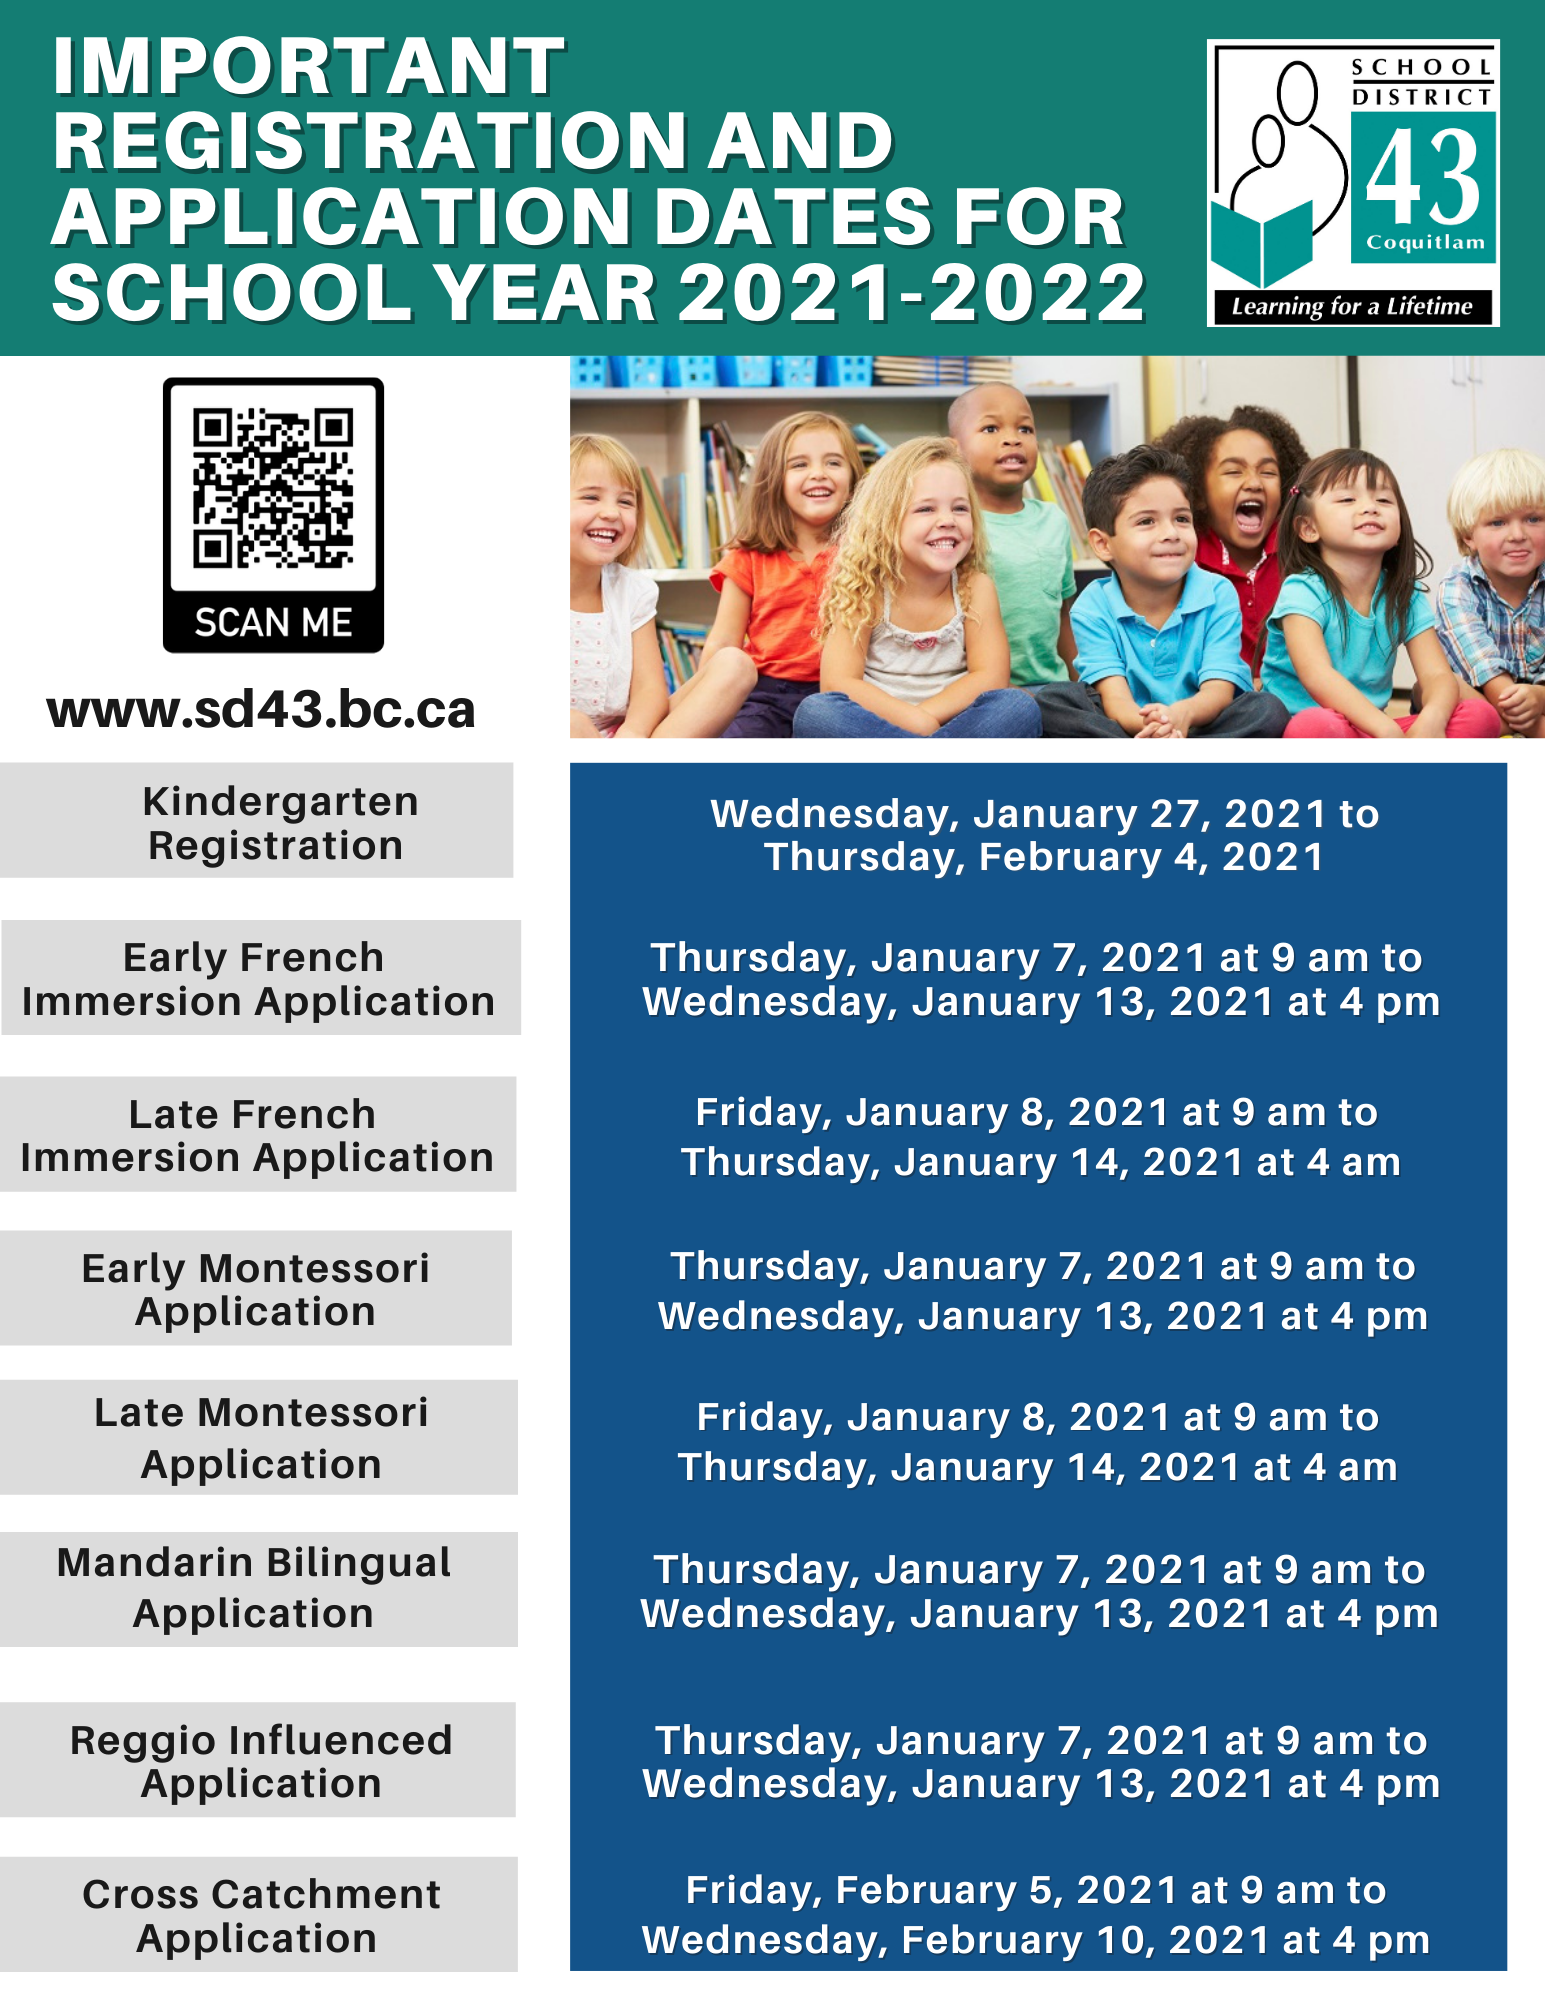 IMPORTANT REGISTRATION AND APPLICATION DATES FOR SCHOOL YEAR 2021-2022 FLYER